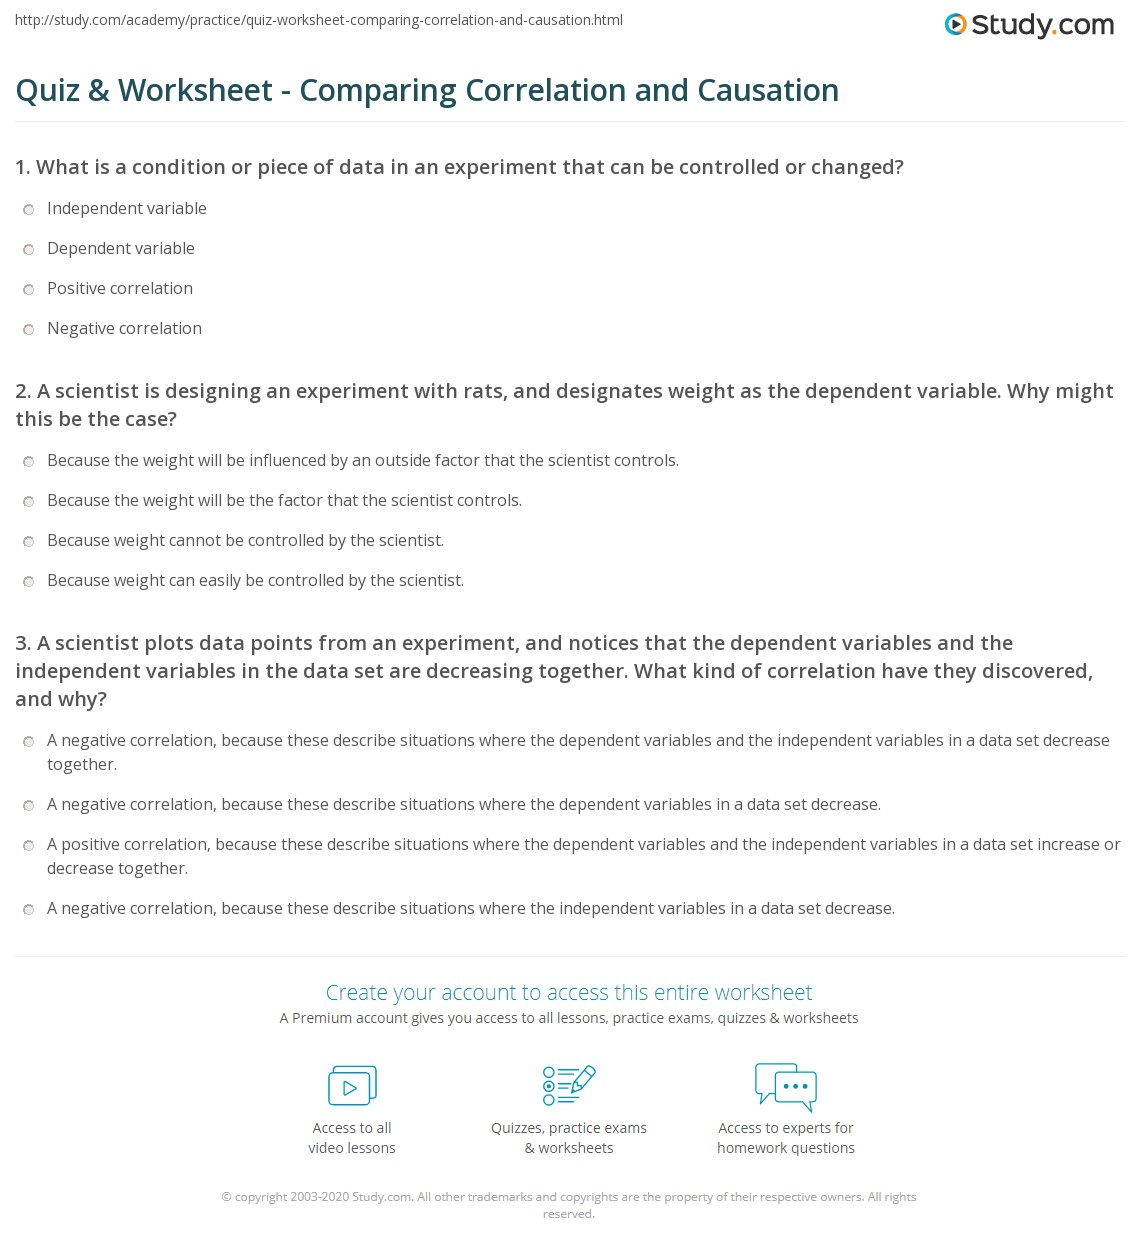 Aldiablosus  Outstanding Quiz Amp Worksheet  Comparing Correlation And Causation  Studycom With Remarkable Print Correlation Vs Causation Differences Amp Definition Worksheet With Amusing Writing Worksheets For Grade  Also Trace The Alphabet Worksheet In Addition Green Eggs And Ham Worksheets And Double Ten Frame Worksheet As Well As Triangular Trade Map Worksheet Additionally Motion Picture Analysis Worksheet From Studycom With Aldiablosus  Remarkable Quiz Amp Worksheet  Comparing Correlation And Causation  Studycom With Amusing Print Correlation Vs Causation Differences Amp Definition Worksheet And Outstanding Writing Worksheets For Grade  Also Trace The Alphabet Worksheet In Addition Green Eggs And Ham Worksheets From Studycom